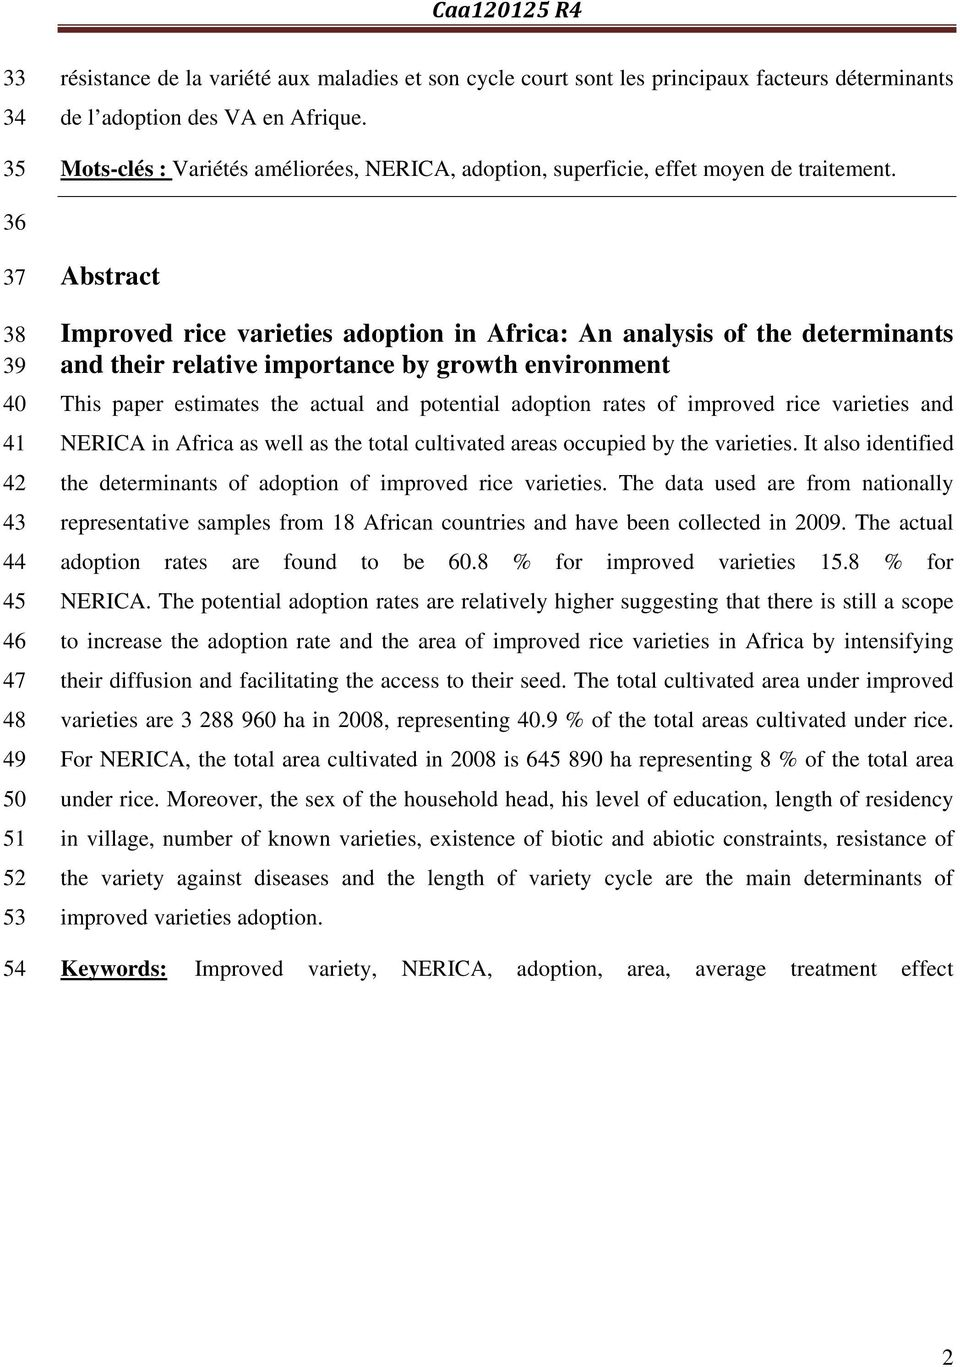 36 37 38 39 40 41 42 43 44 45 46 47 48 49 50 51 52 53 54 Abstract Improved rice varieties adoption in Africa: An analysis of the determinants and their relative importance by growth environment This